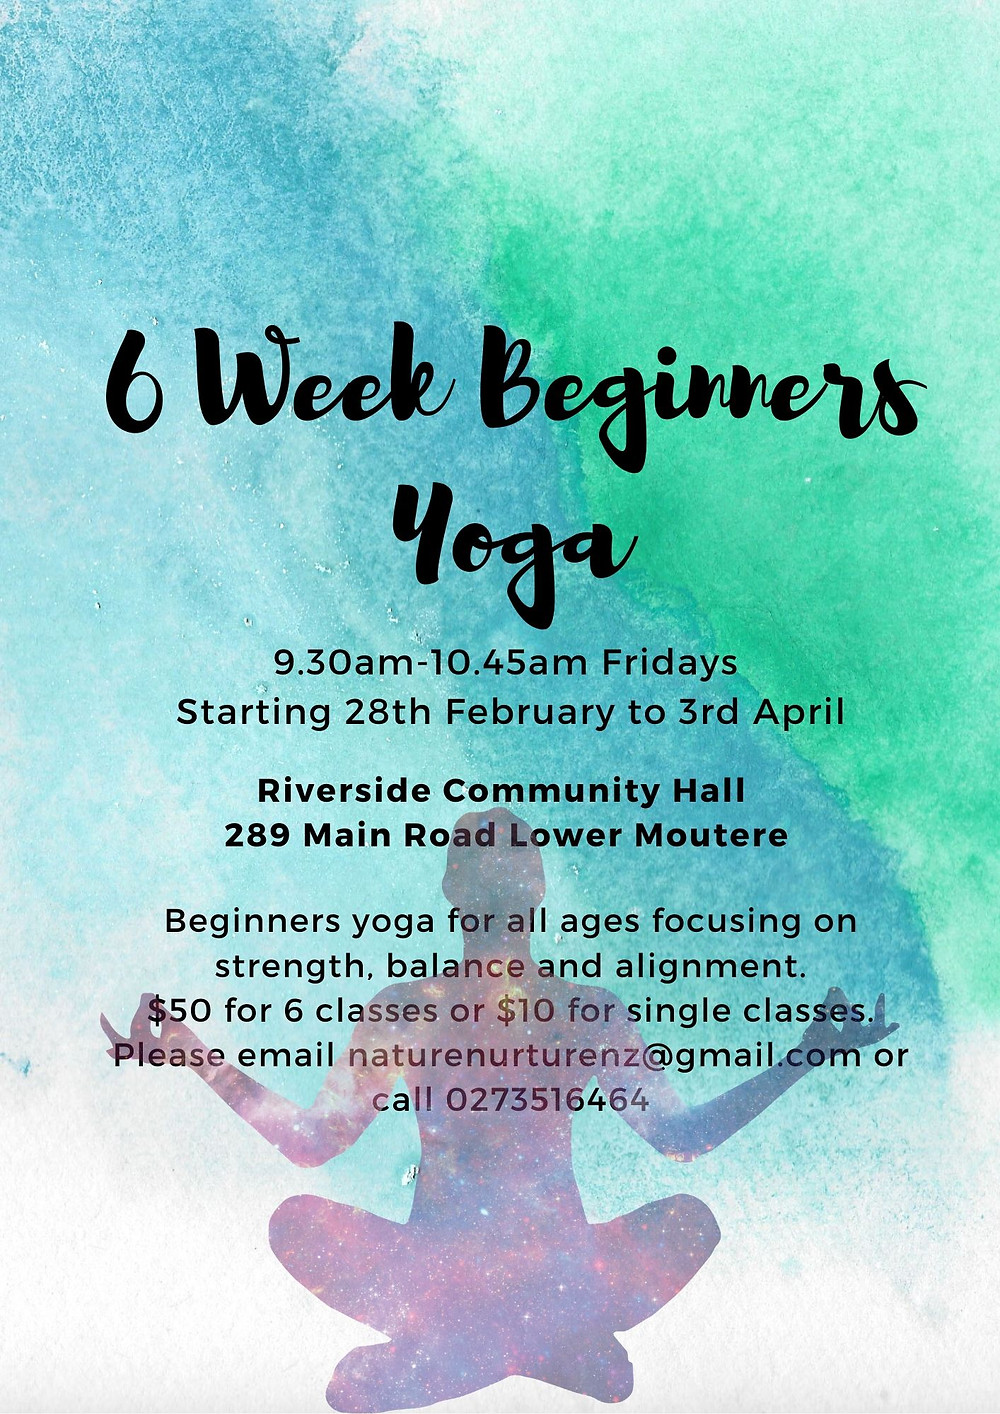 Beginners Yoga at Riverside